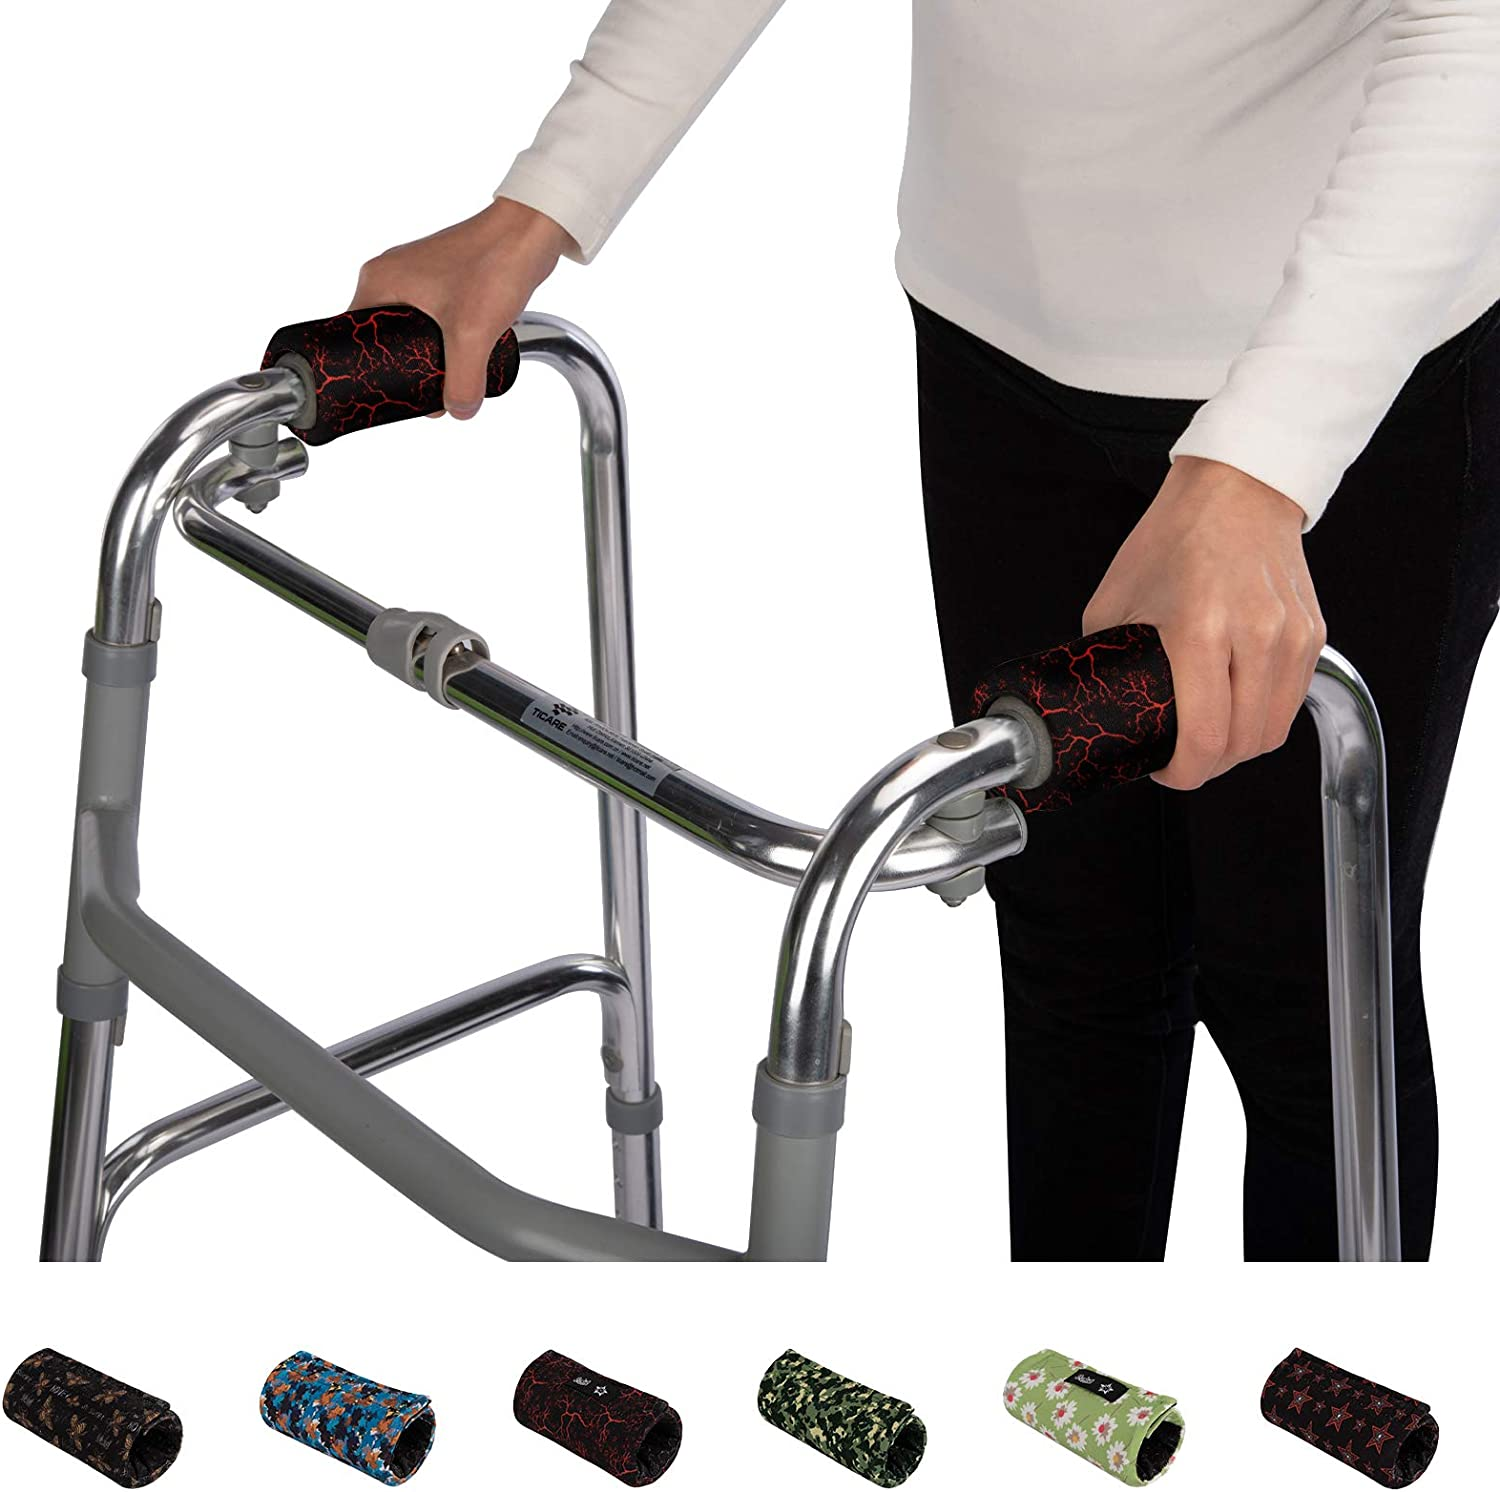 Oakland Mall Walker Hand Grips Padded Wheelchair Folding Albuquerque Mall Covers Rolling